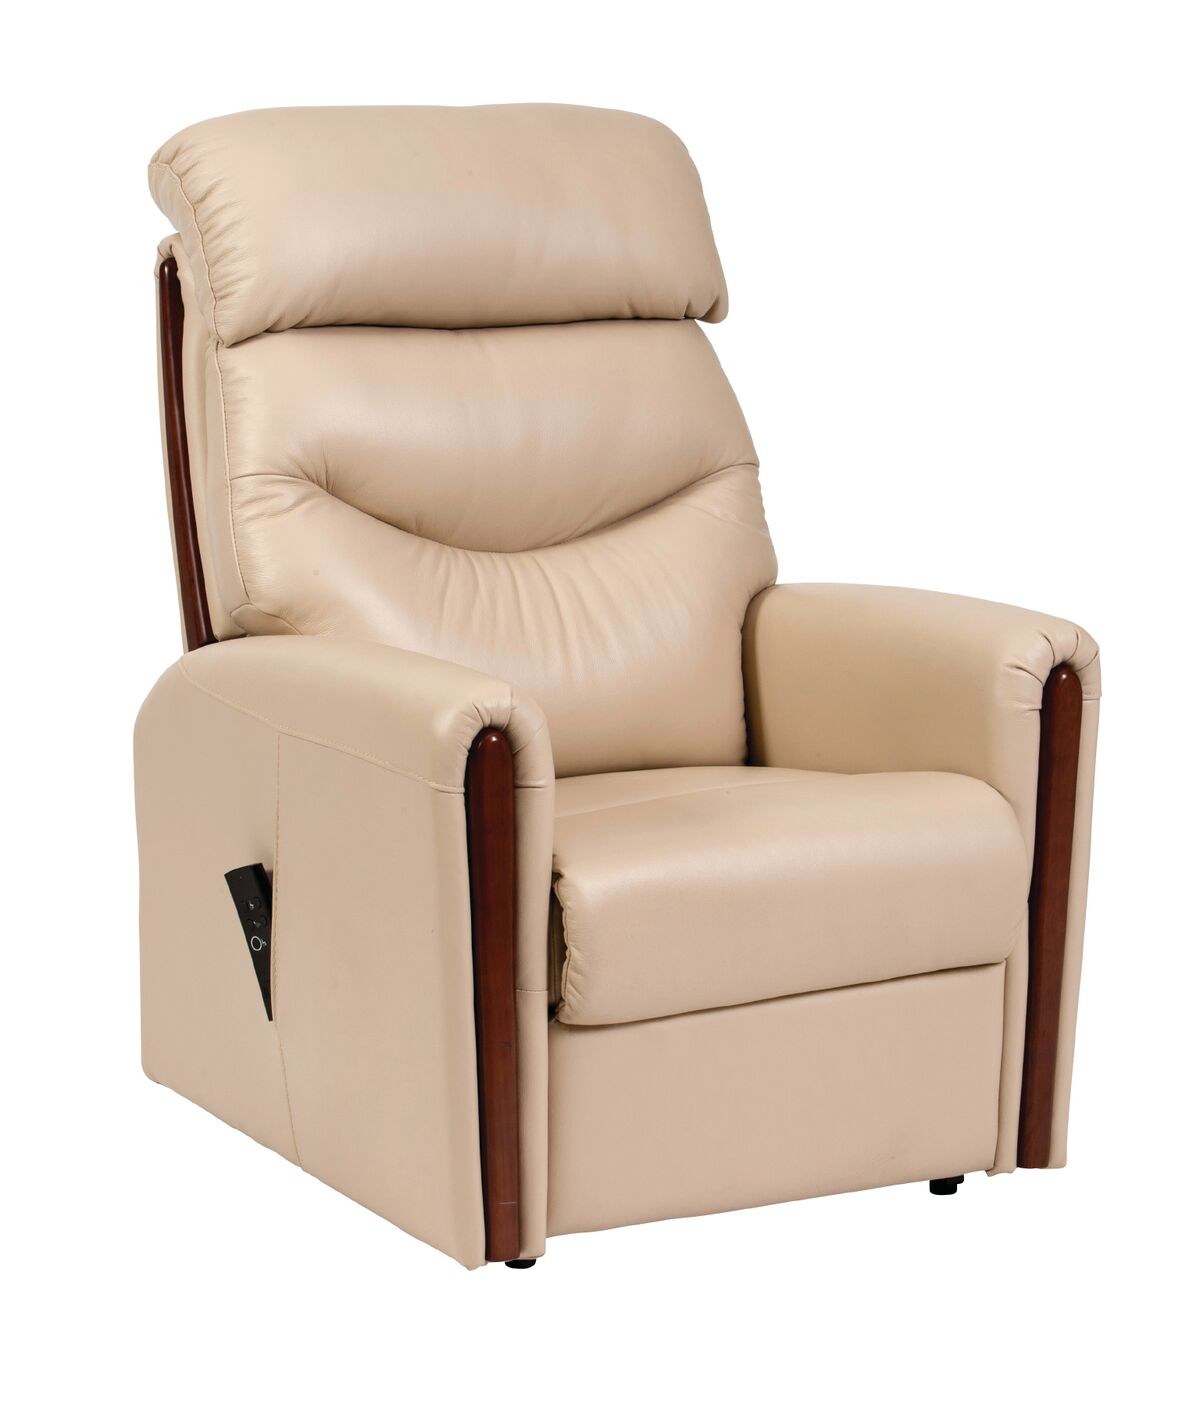 Leather Dual Motor Riser Recliner - Available to see in Menai Bridge & Valley